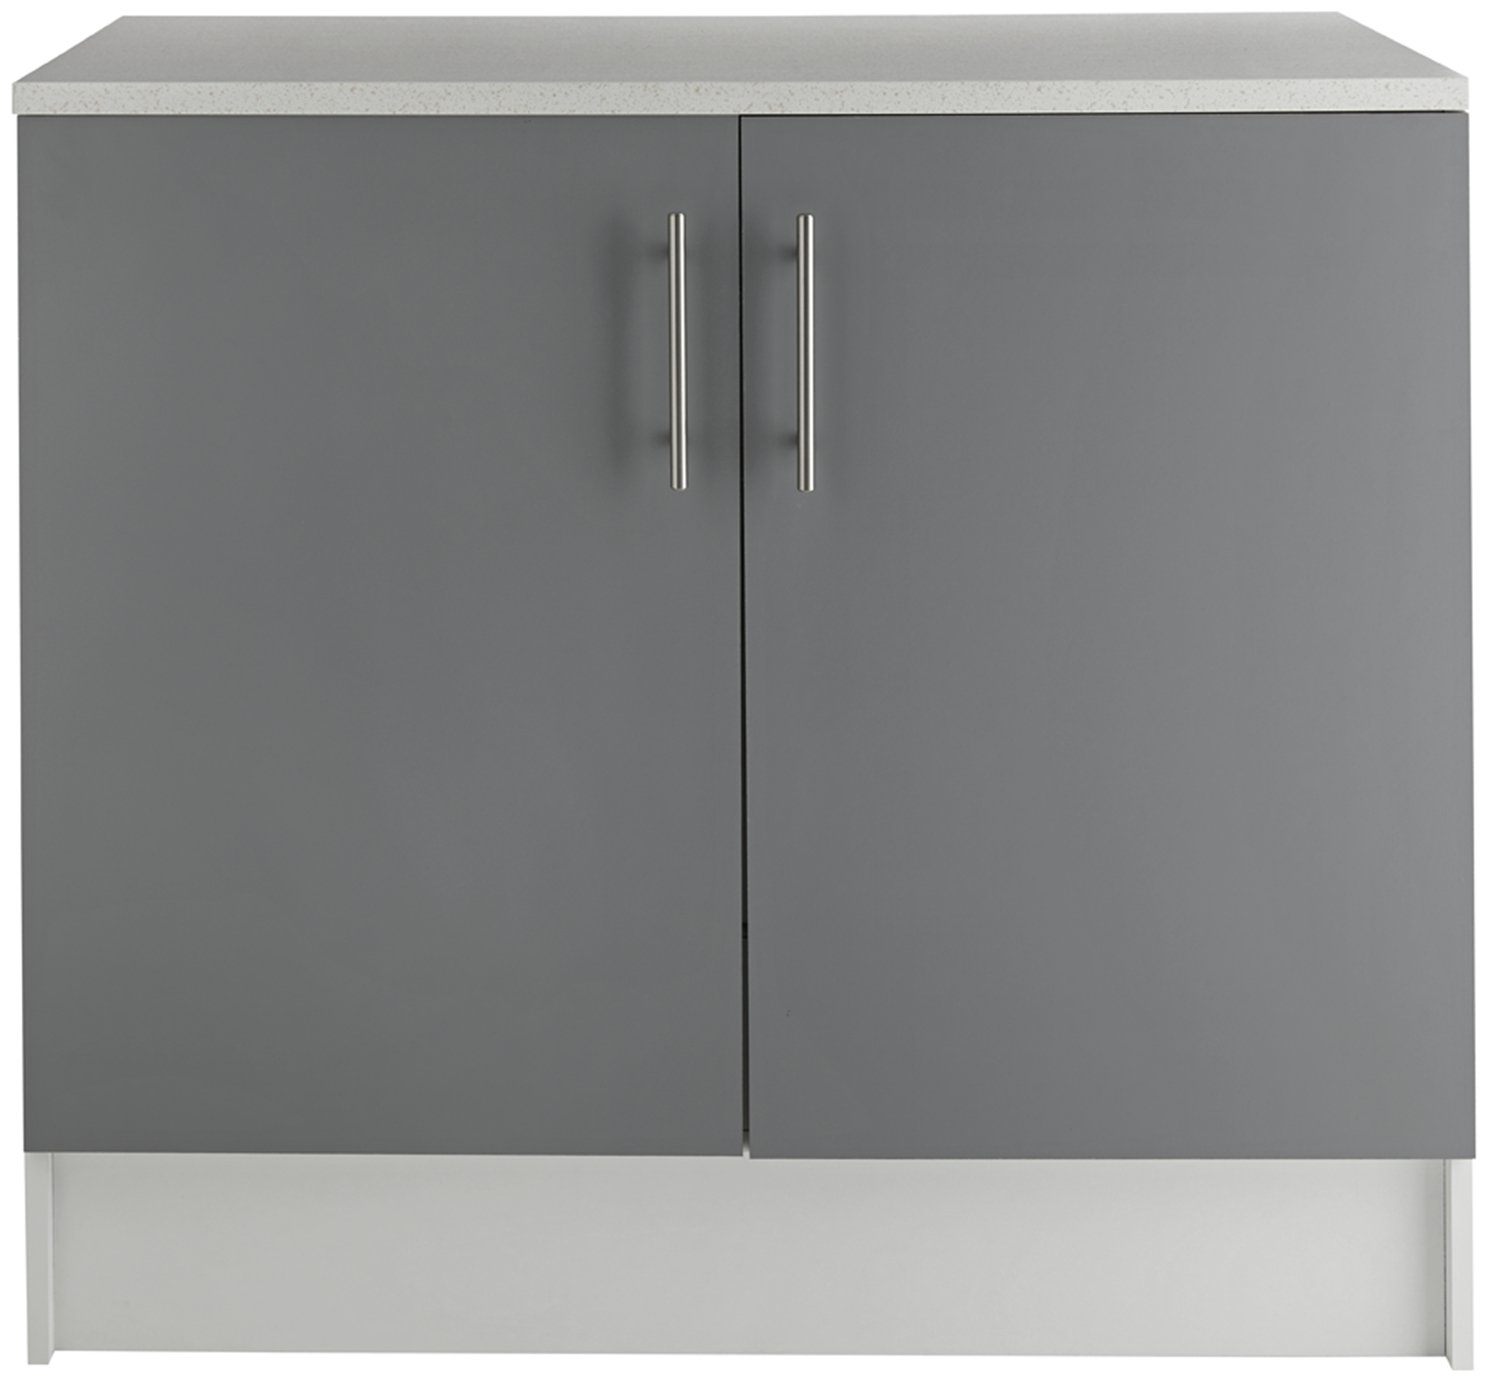 Argos Home Athina 1000mm Fitted Kitchen Base Unit - Grey : kitchen base cabinets cheap - hauntedcathouse.org